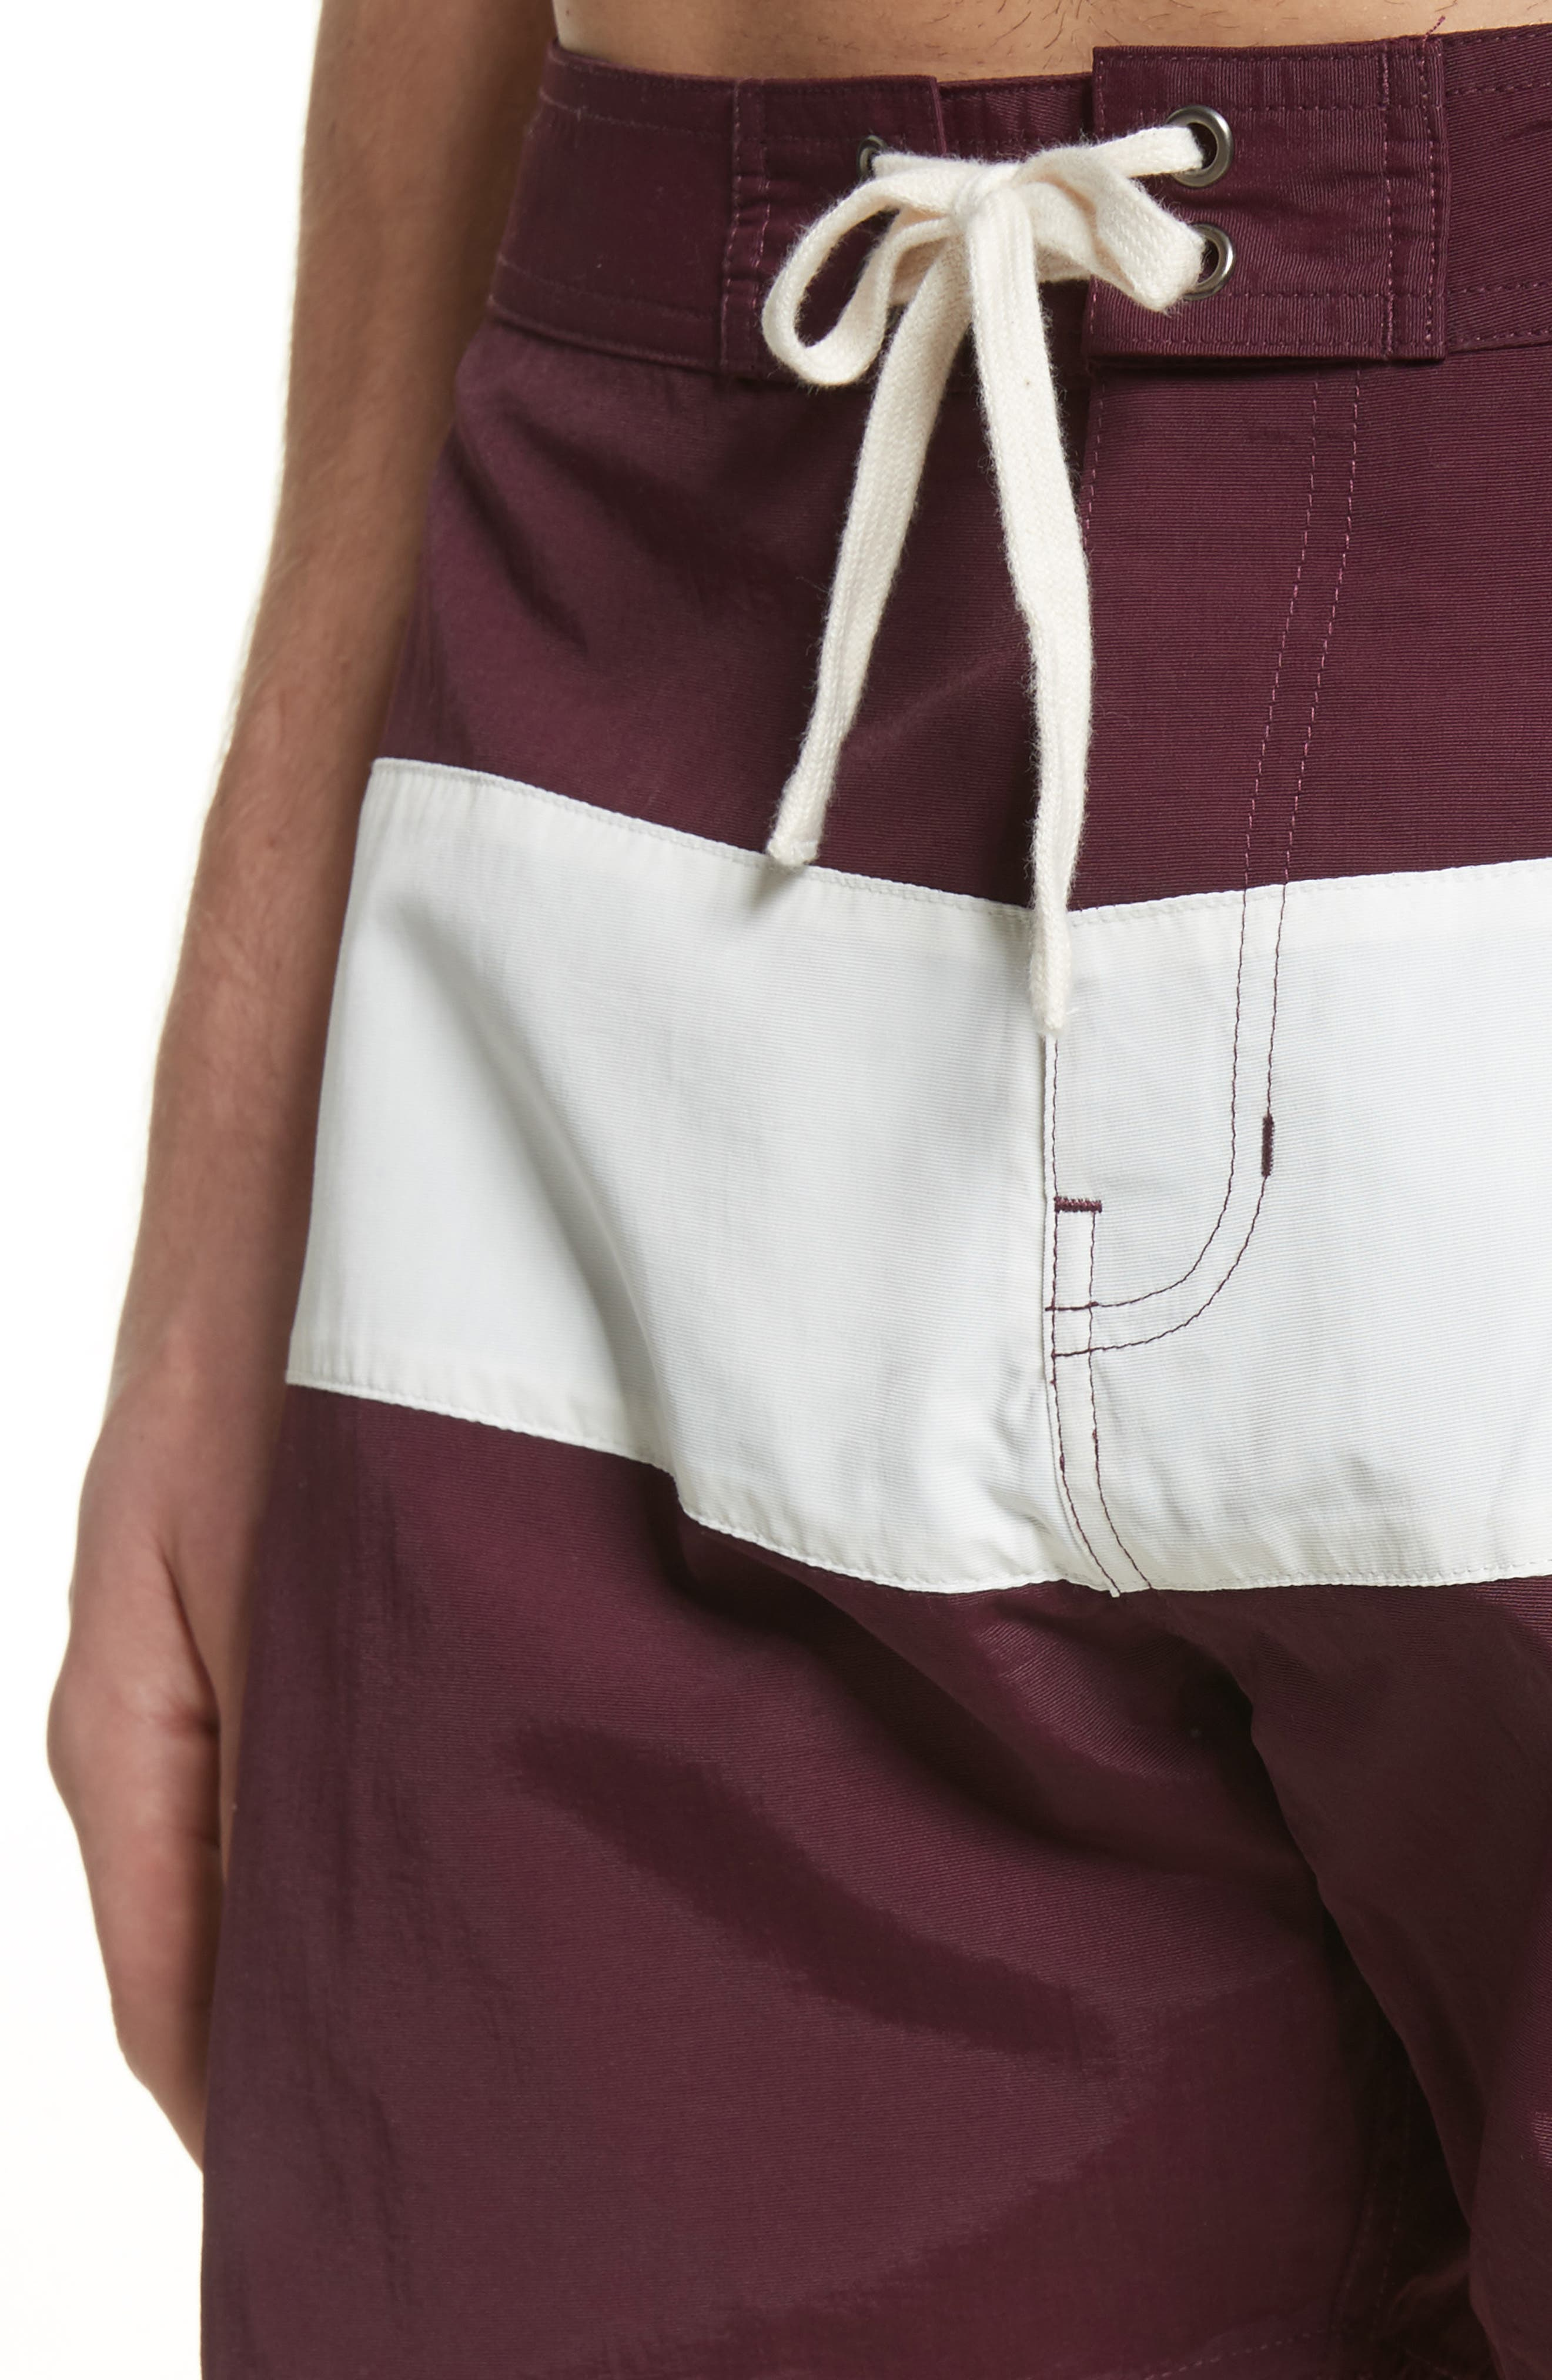 Grant Board Shorts,                             Alternate thumbnail 4, color,                             Dark Mauve/Ivory